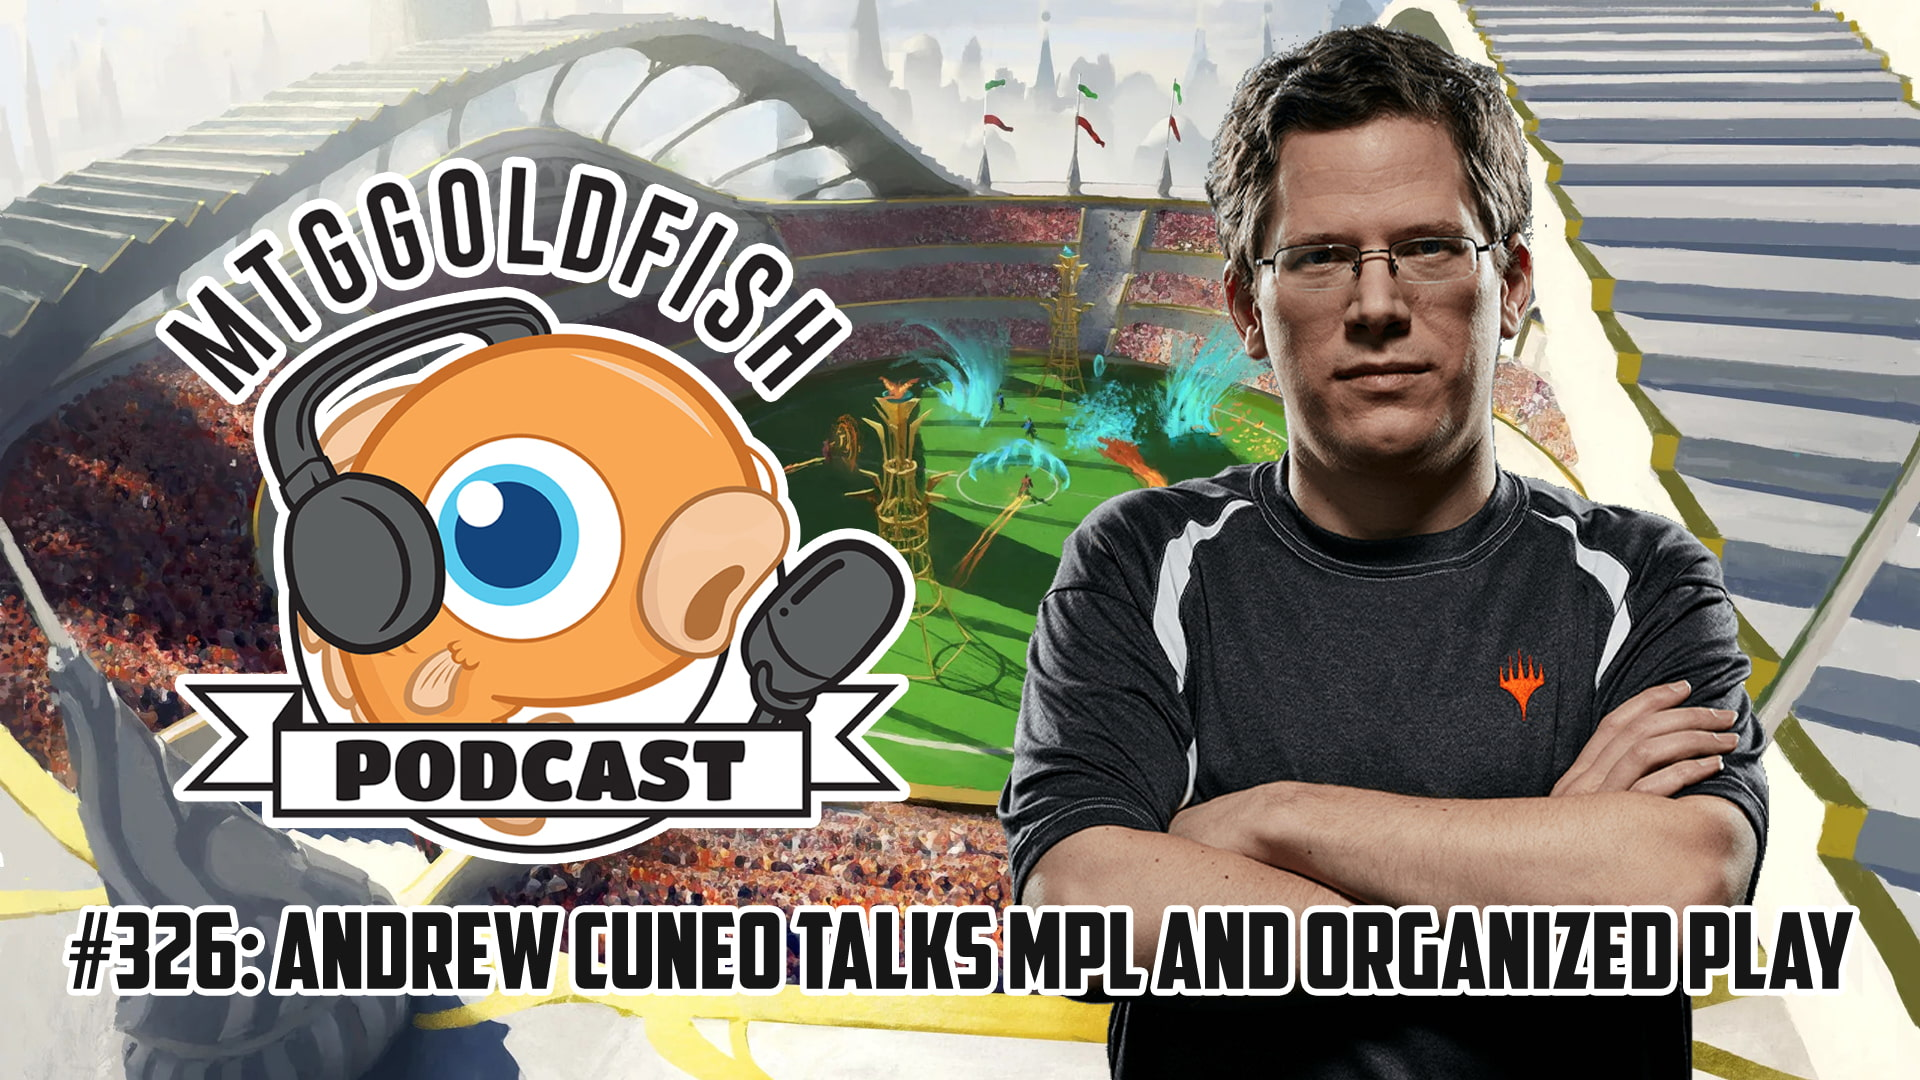 Image for Podcast 326: Andrew Cuneo Talks MPL and Organized Play